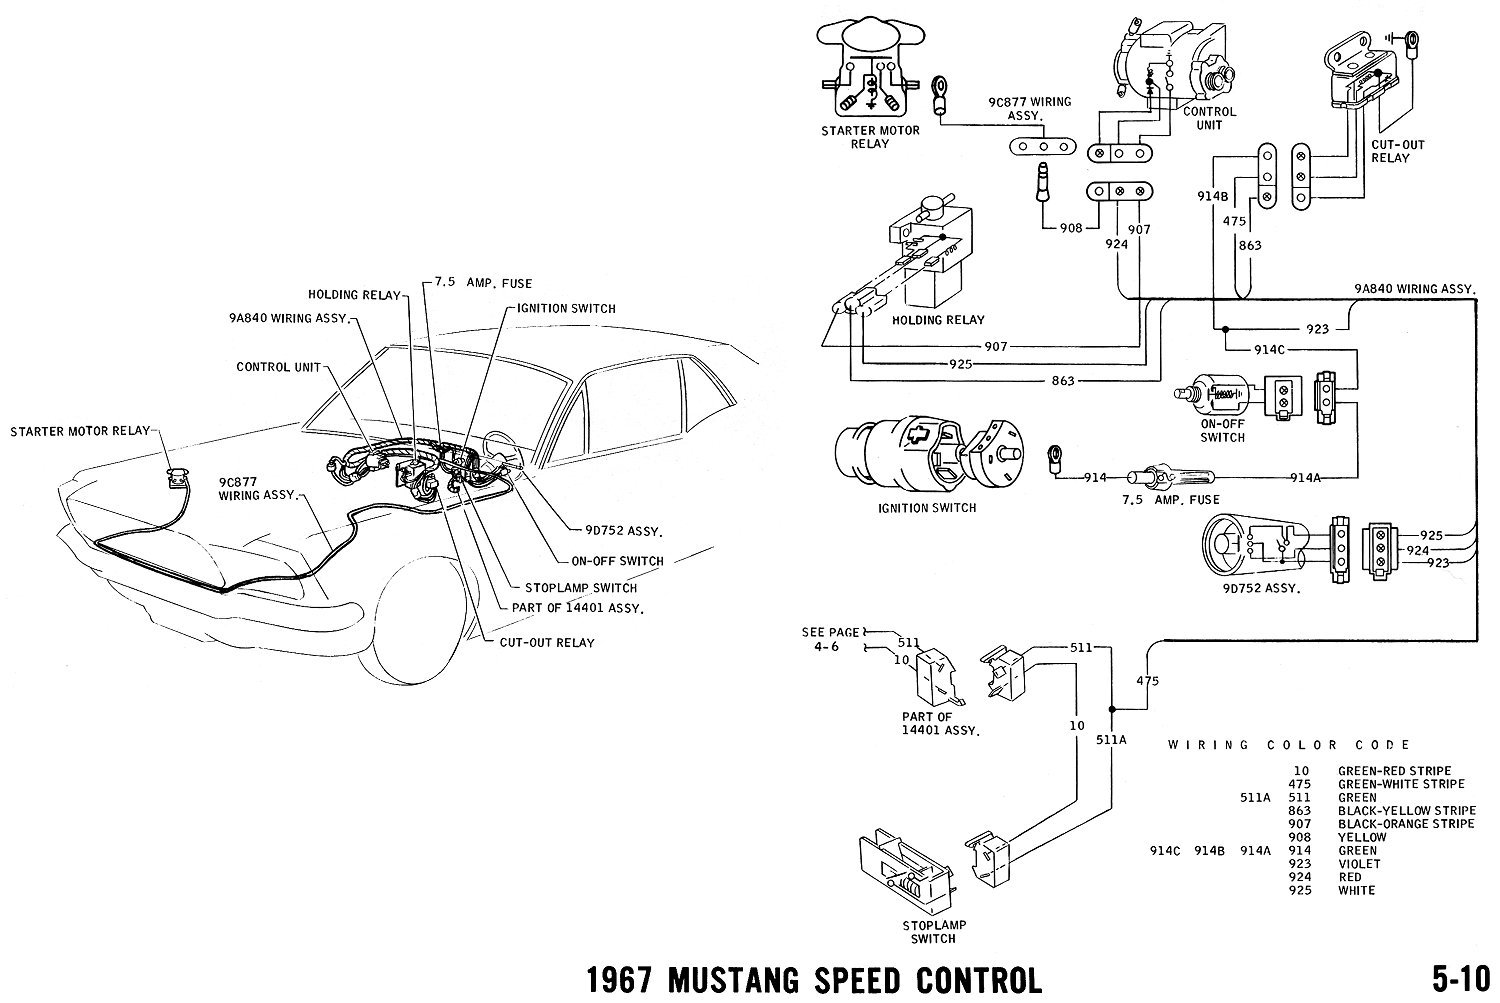 67speed 1967 mustang wiring and vacuum diagrams average joe restoration 65 mustang alternator wiring diagram at soozxer.org